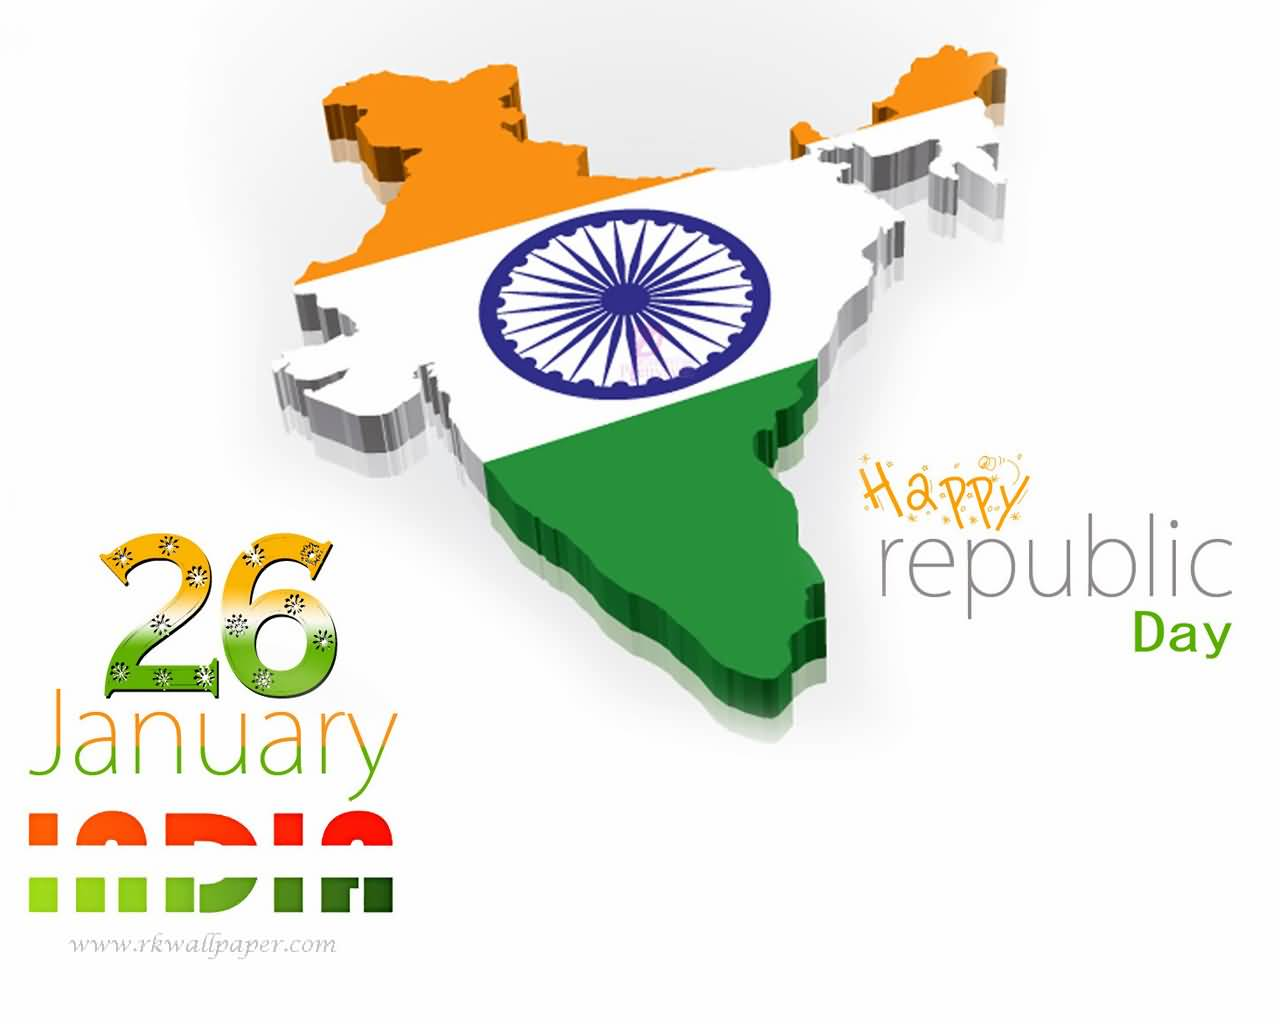 60 beautiful republic day india greeting card pictures 26 january india happy republic day indian map greeting card m4hsunfo